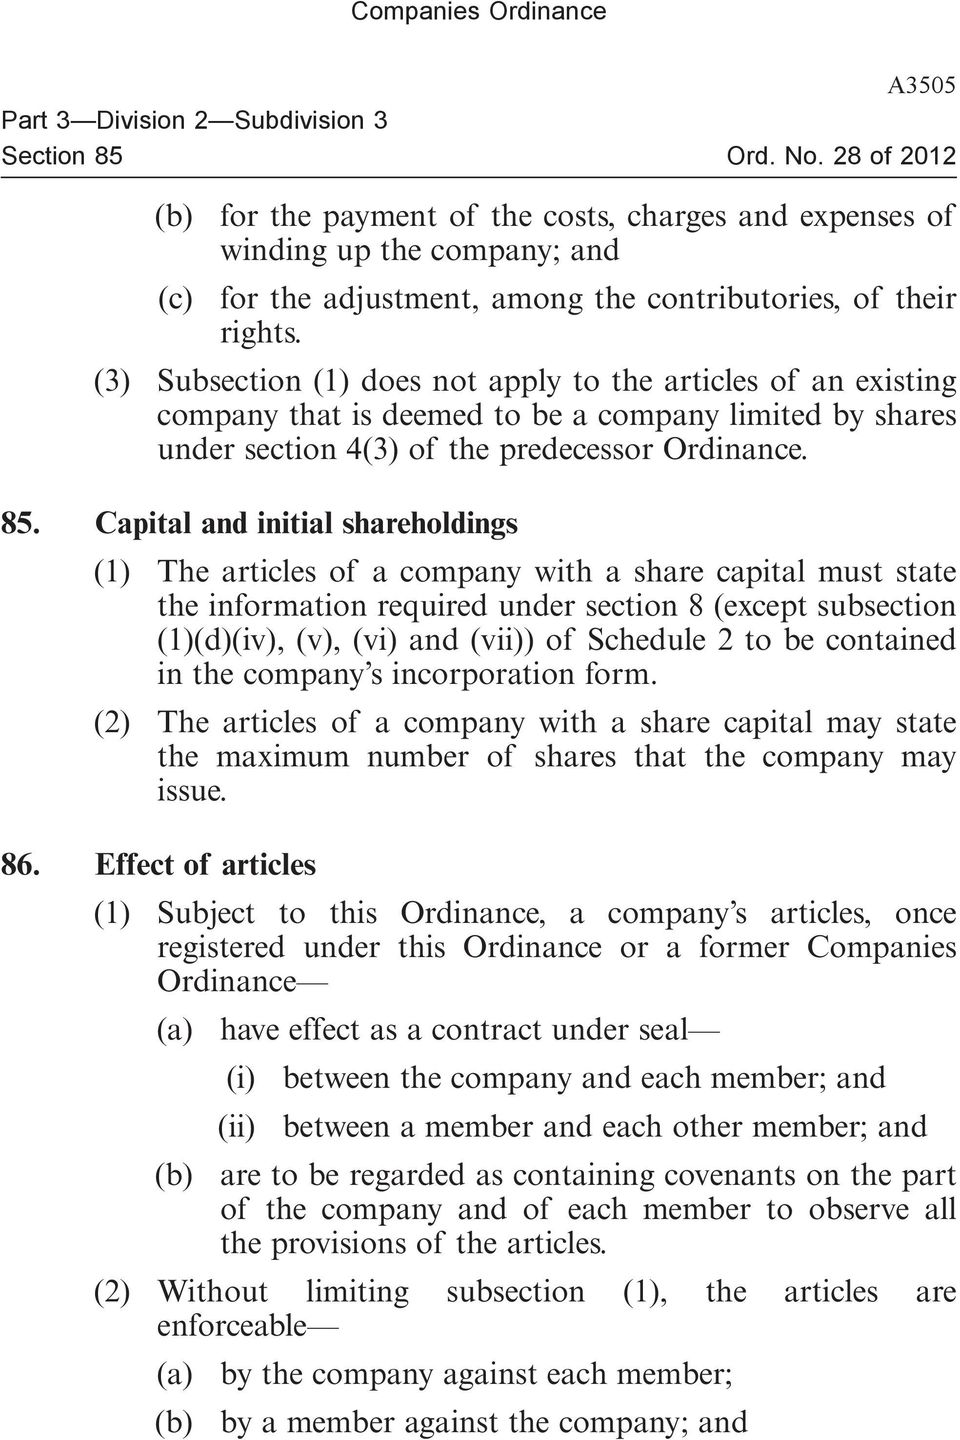 Capital and initial shareholdings (1) The articles of a company with a share capital must state the information required under section 8 (except subsection (1)(d)(iv), (v), (vi) and (vii)) of